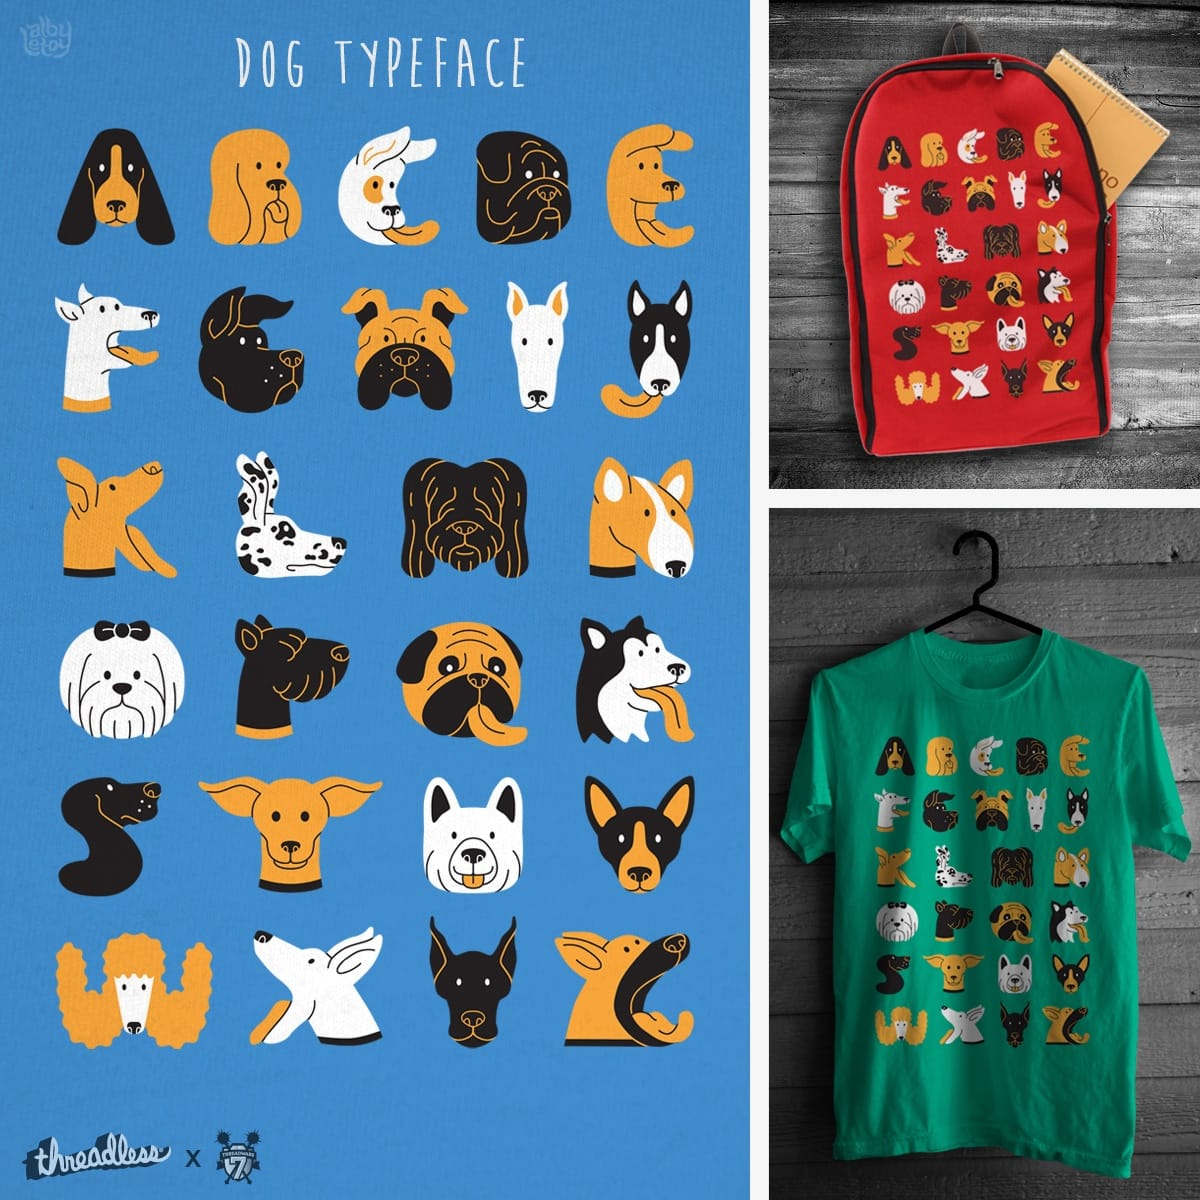 DOG TYPEFACE by albyletoy on Threadless